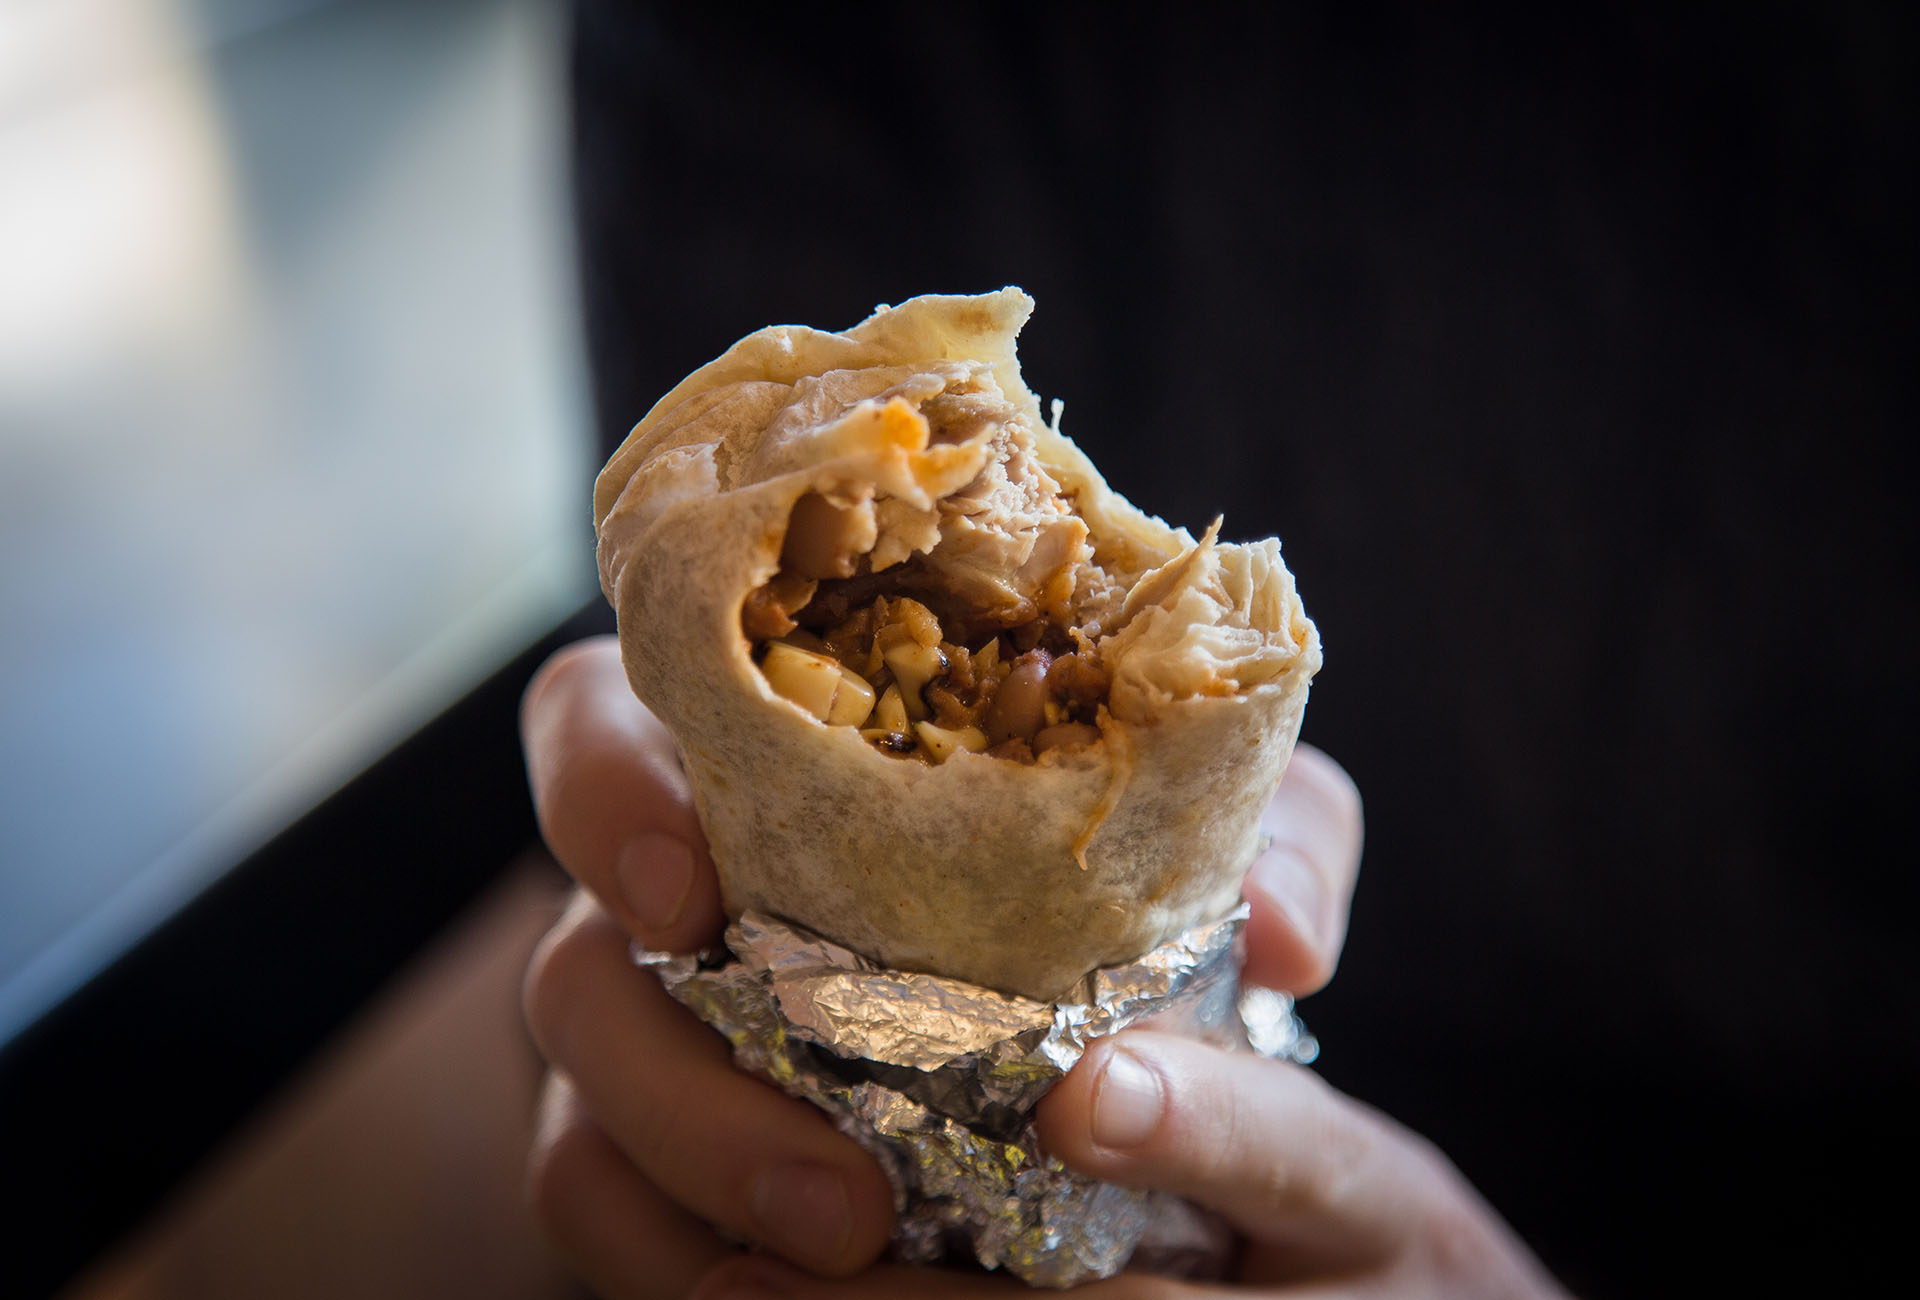 The inside of the Fried Chicken Burrito, and a glimpse of a crispy piece of Fried Chicken inside.